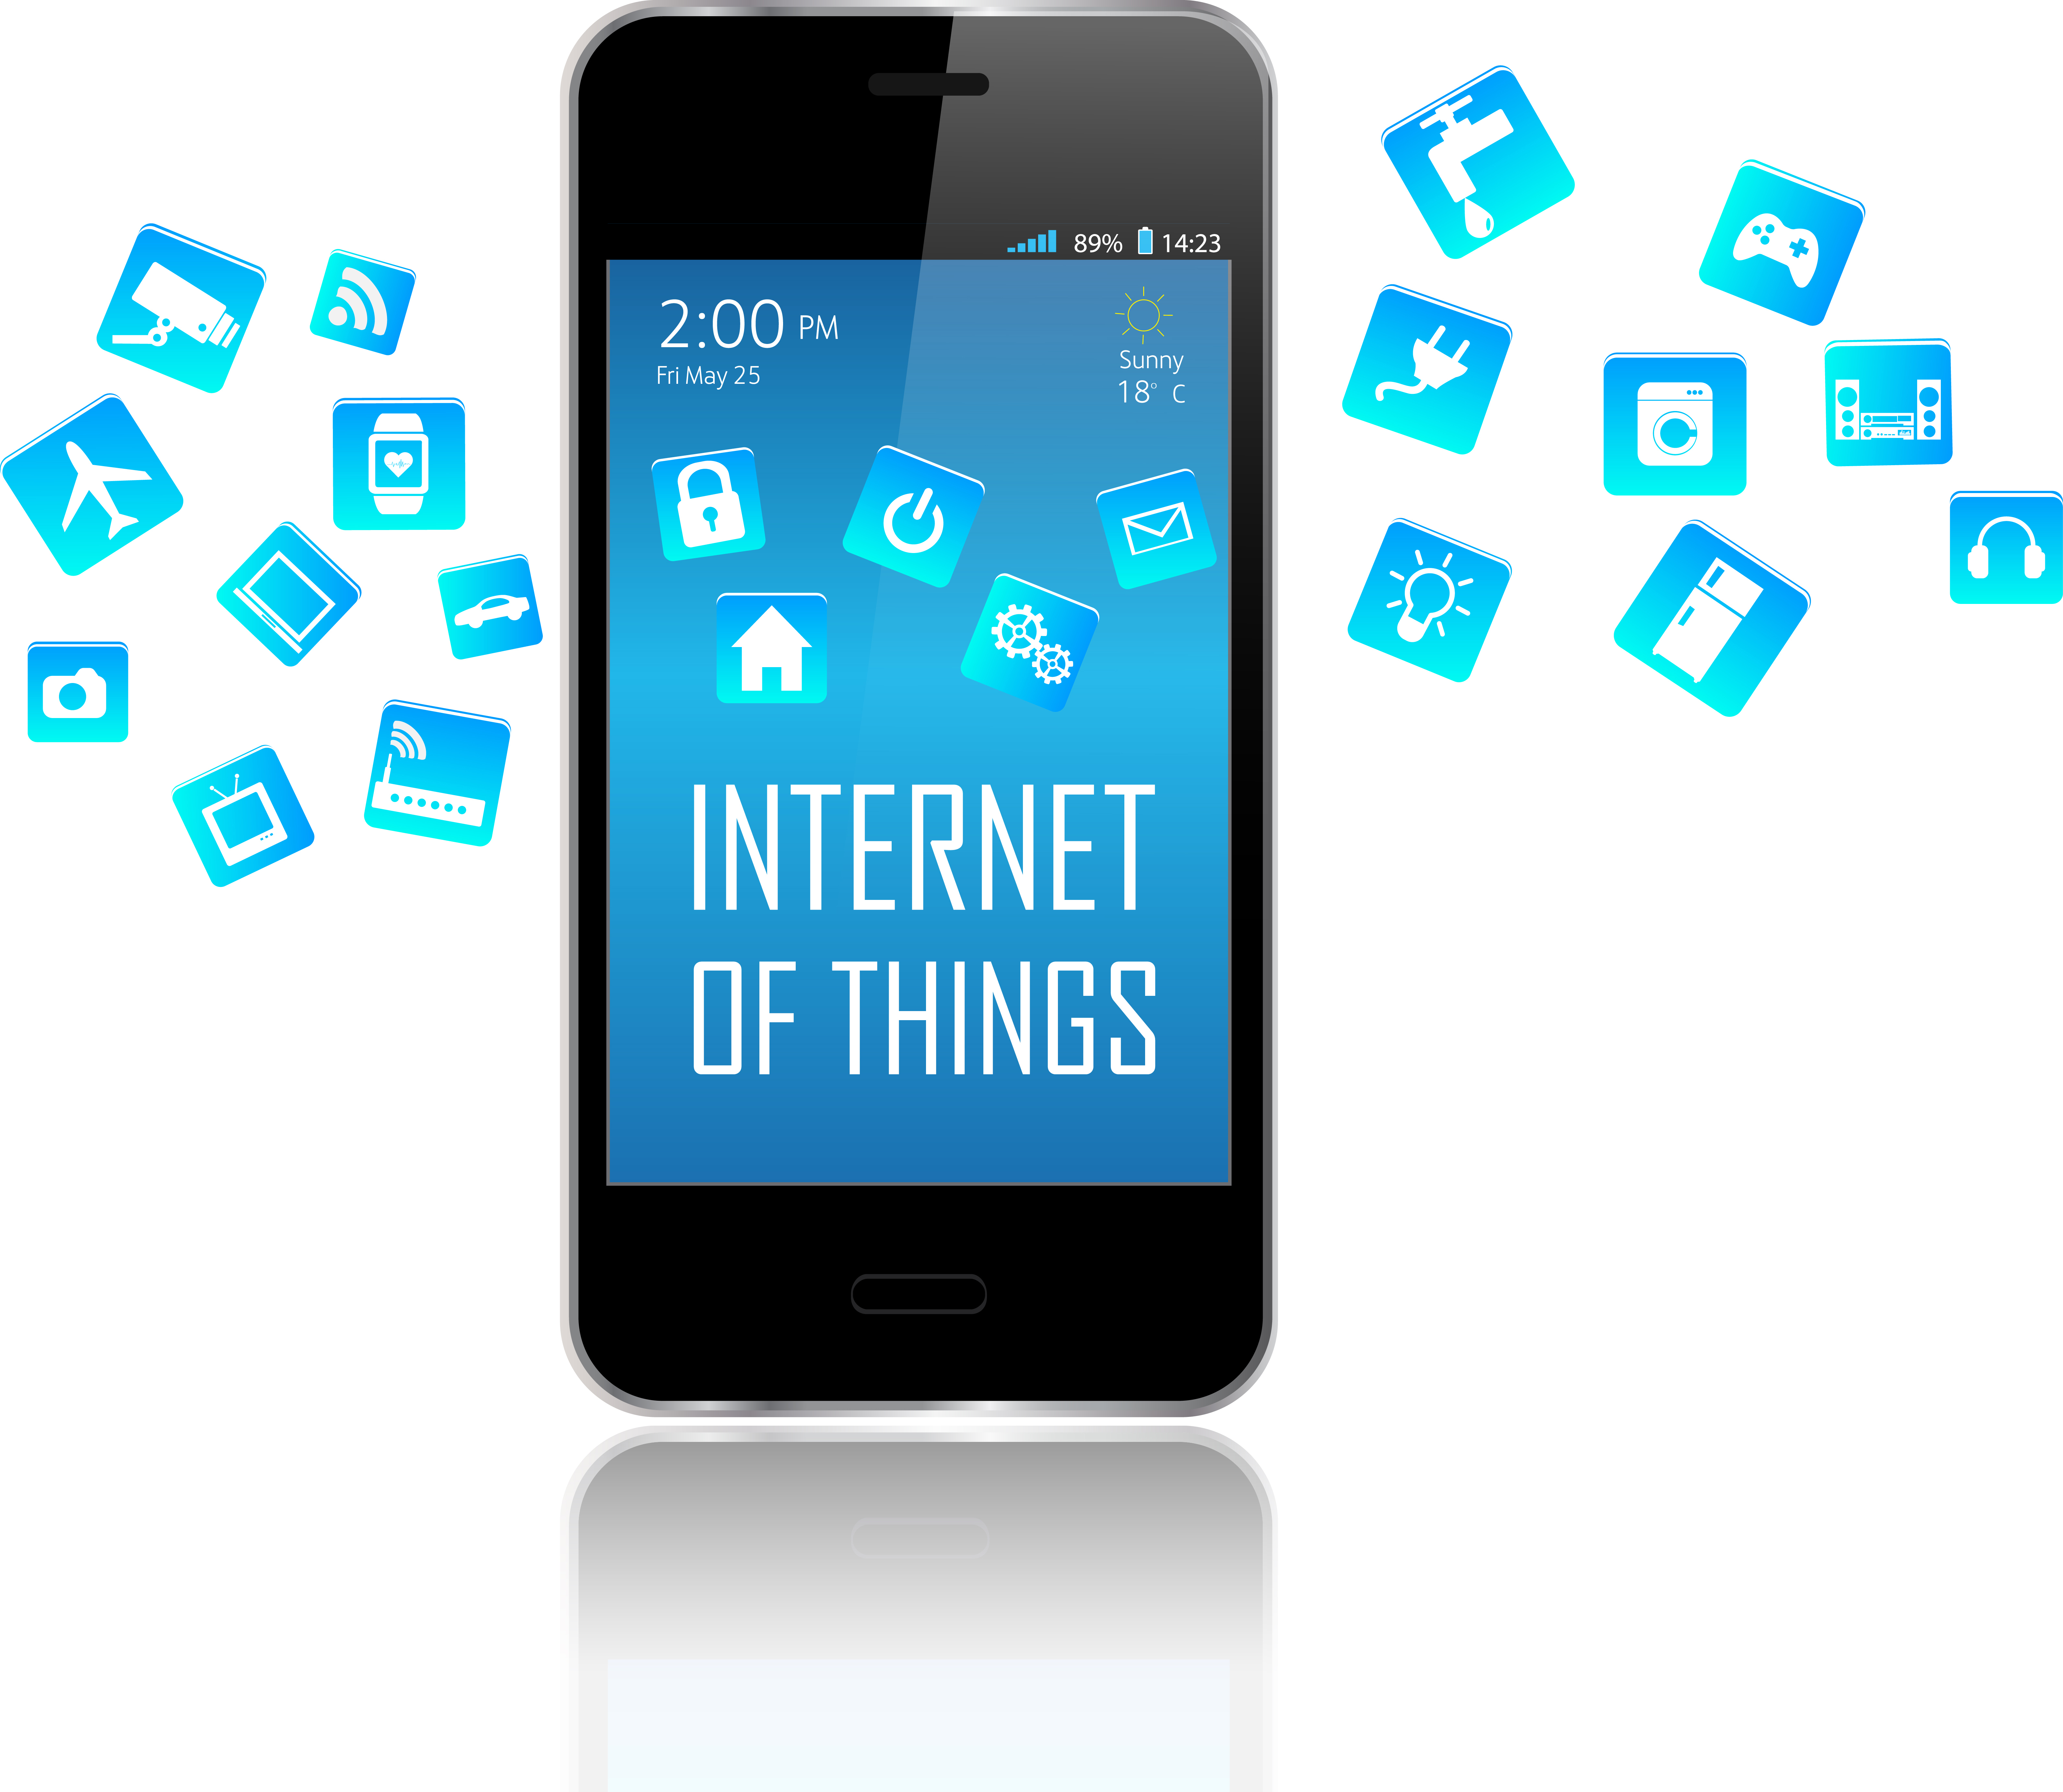 Better Security for the Internet of Things